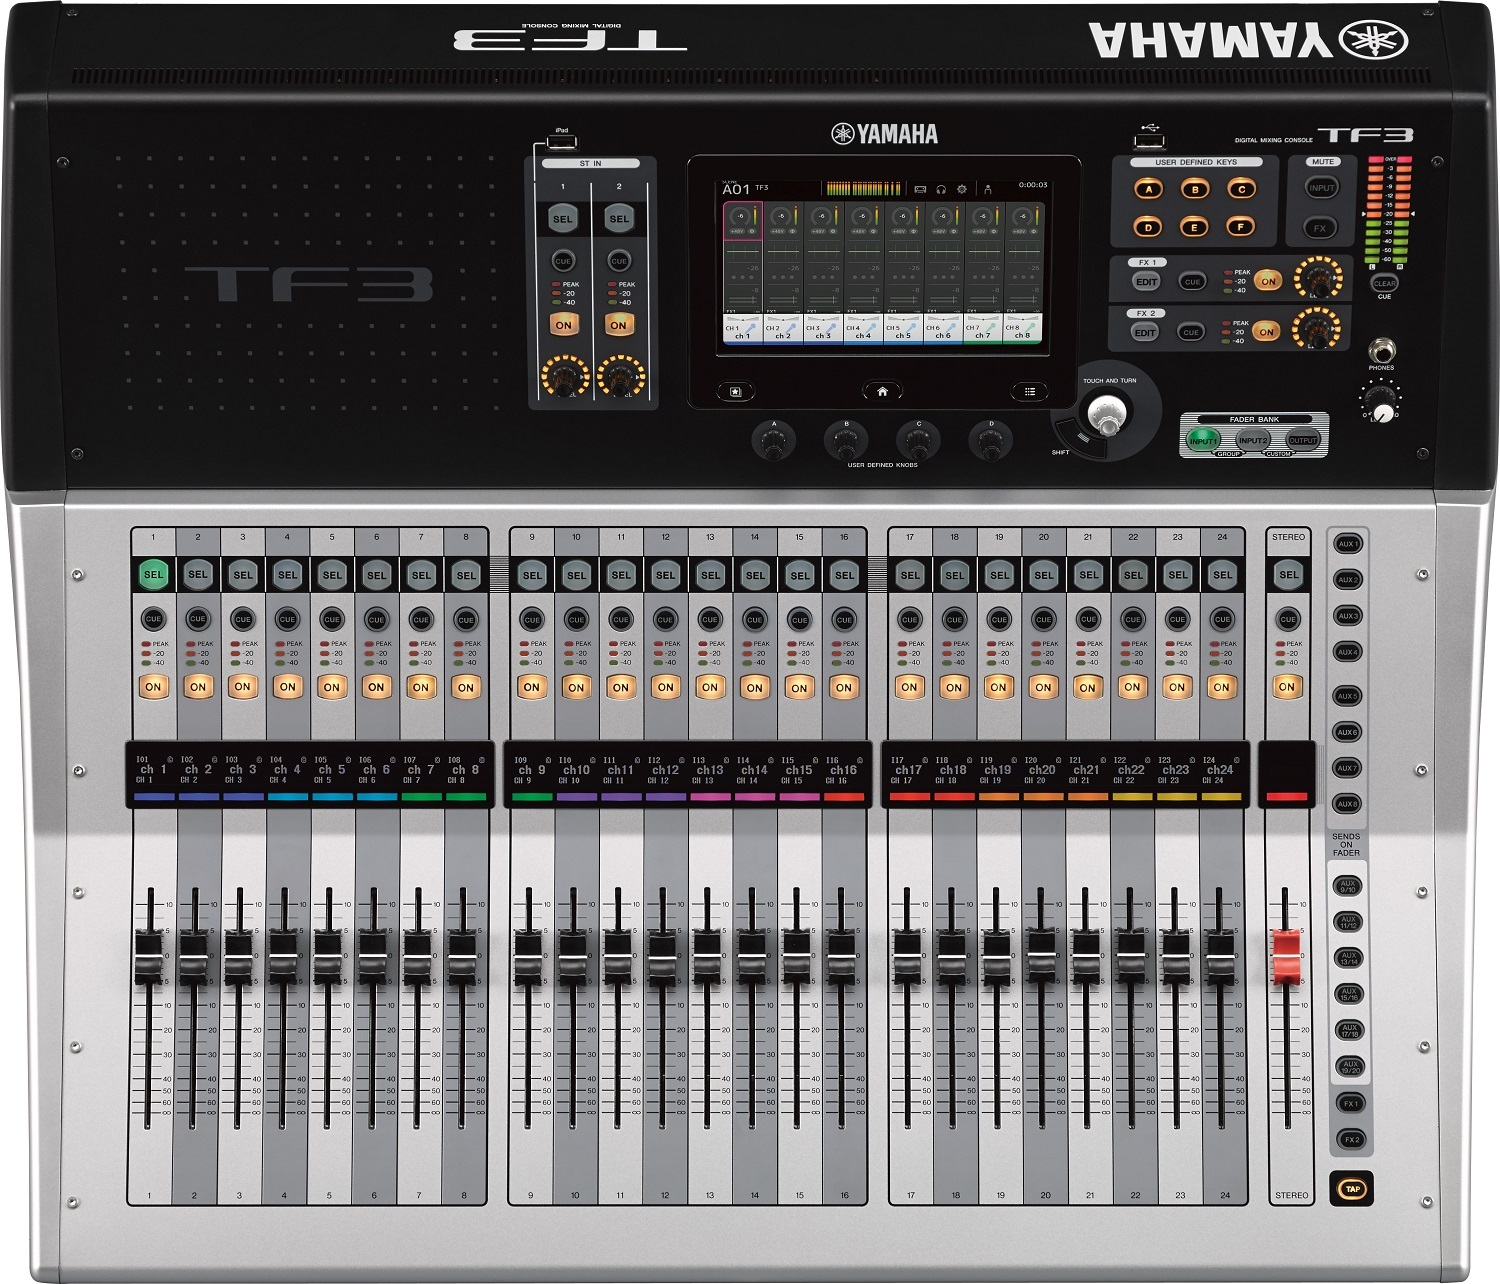 yamaha tf3 digital mixing console 48 input channel usb with touchflow operation mixer yamaha. Black Bedroom Furniture Sets. Home Design Ideas